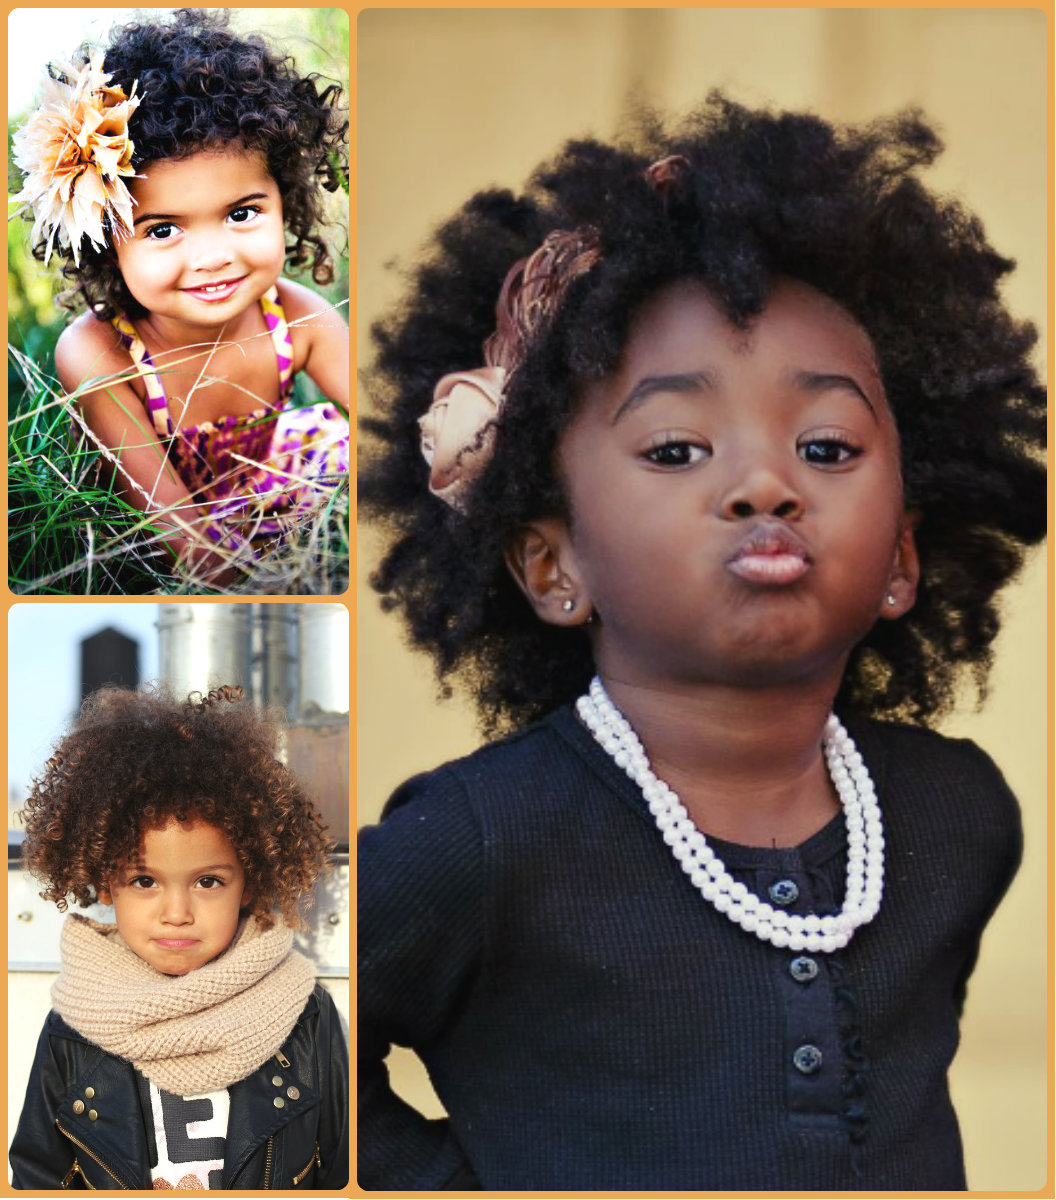 Astounding Holiday Hairstyles For Little Black Girls Hairstyles 2016 Hair Hairstyle Inspiration Daily Dogsangcom